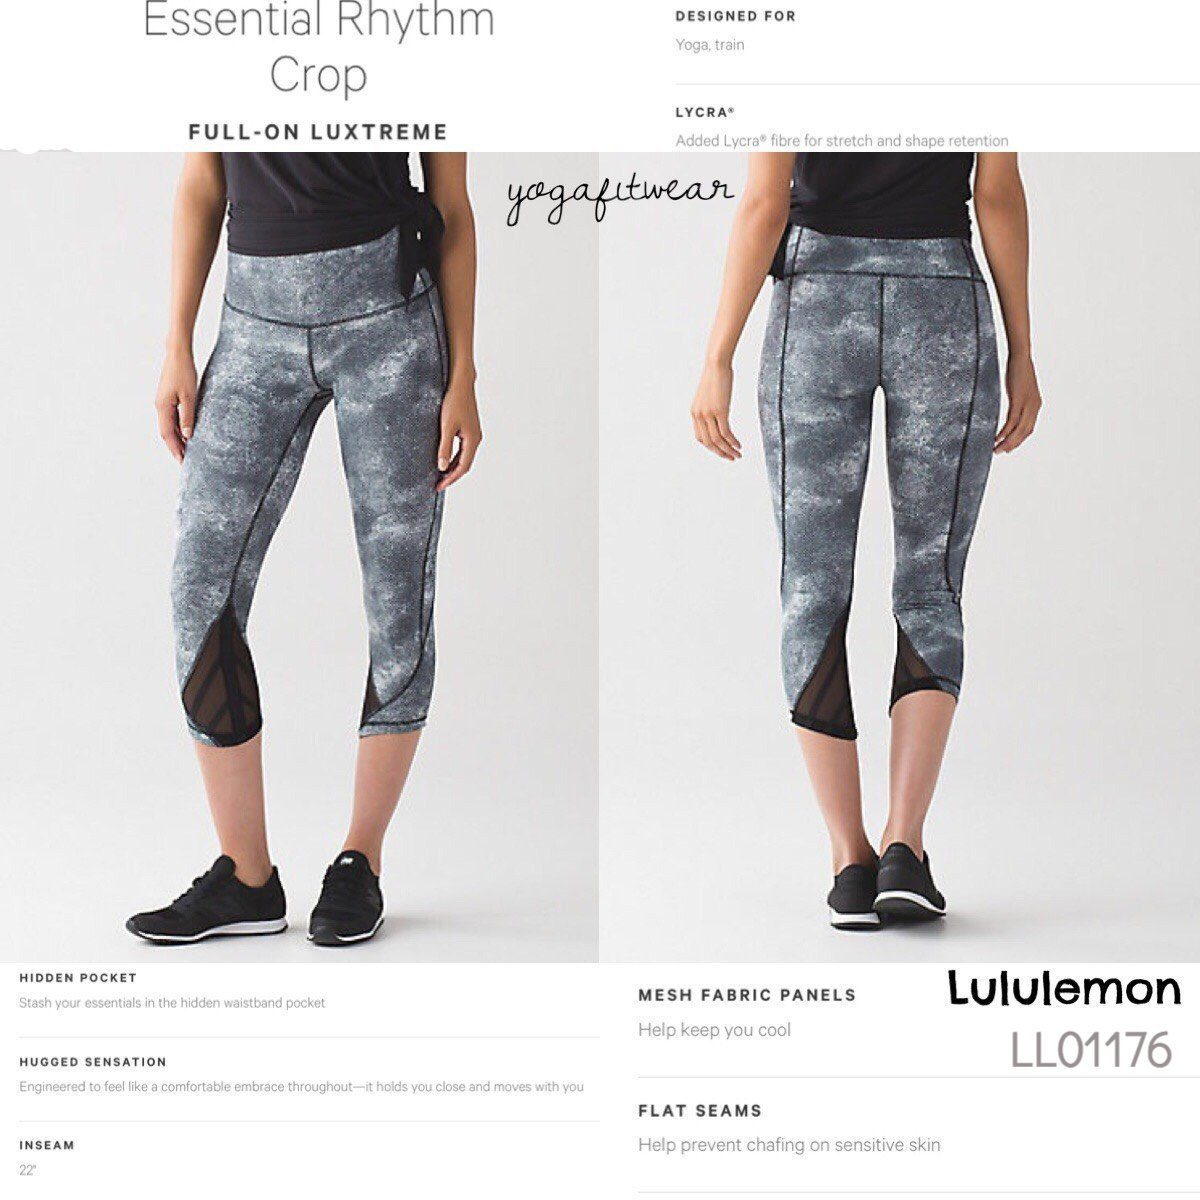 Lululemon - Essential Rhythm Crop 22